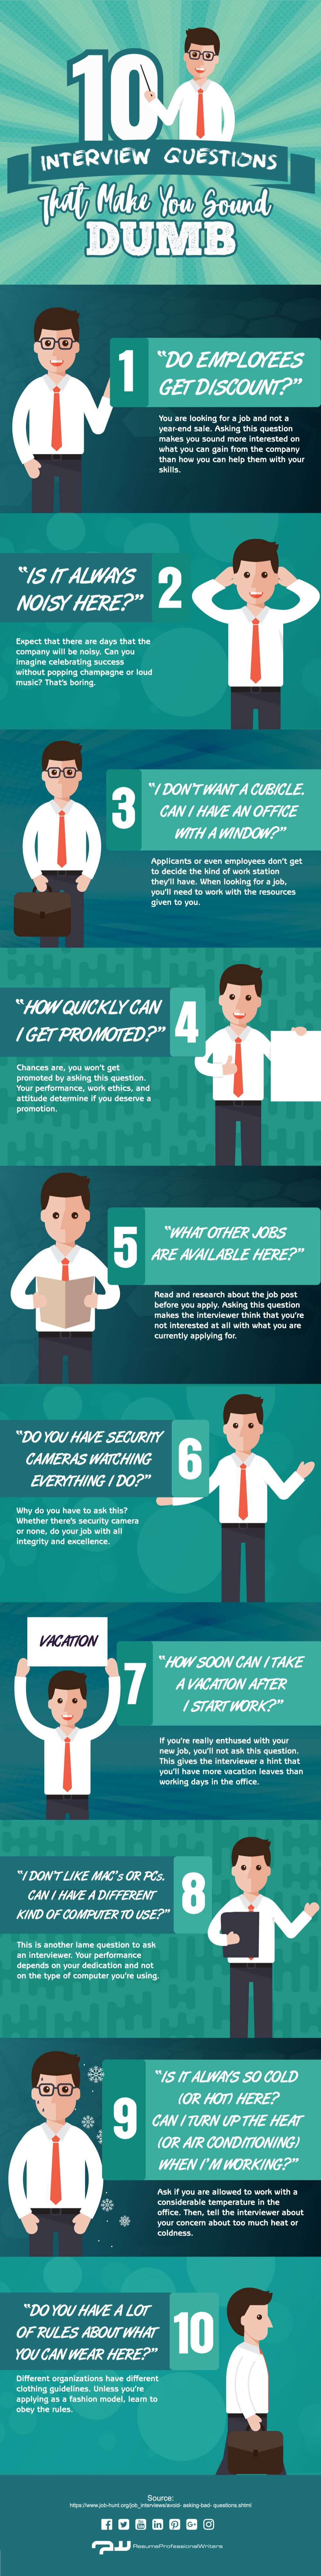 10 Interview Questions That Make You Sound Dumb #Infographic